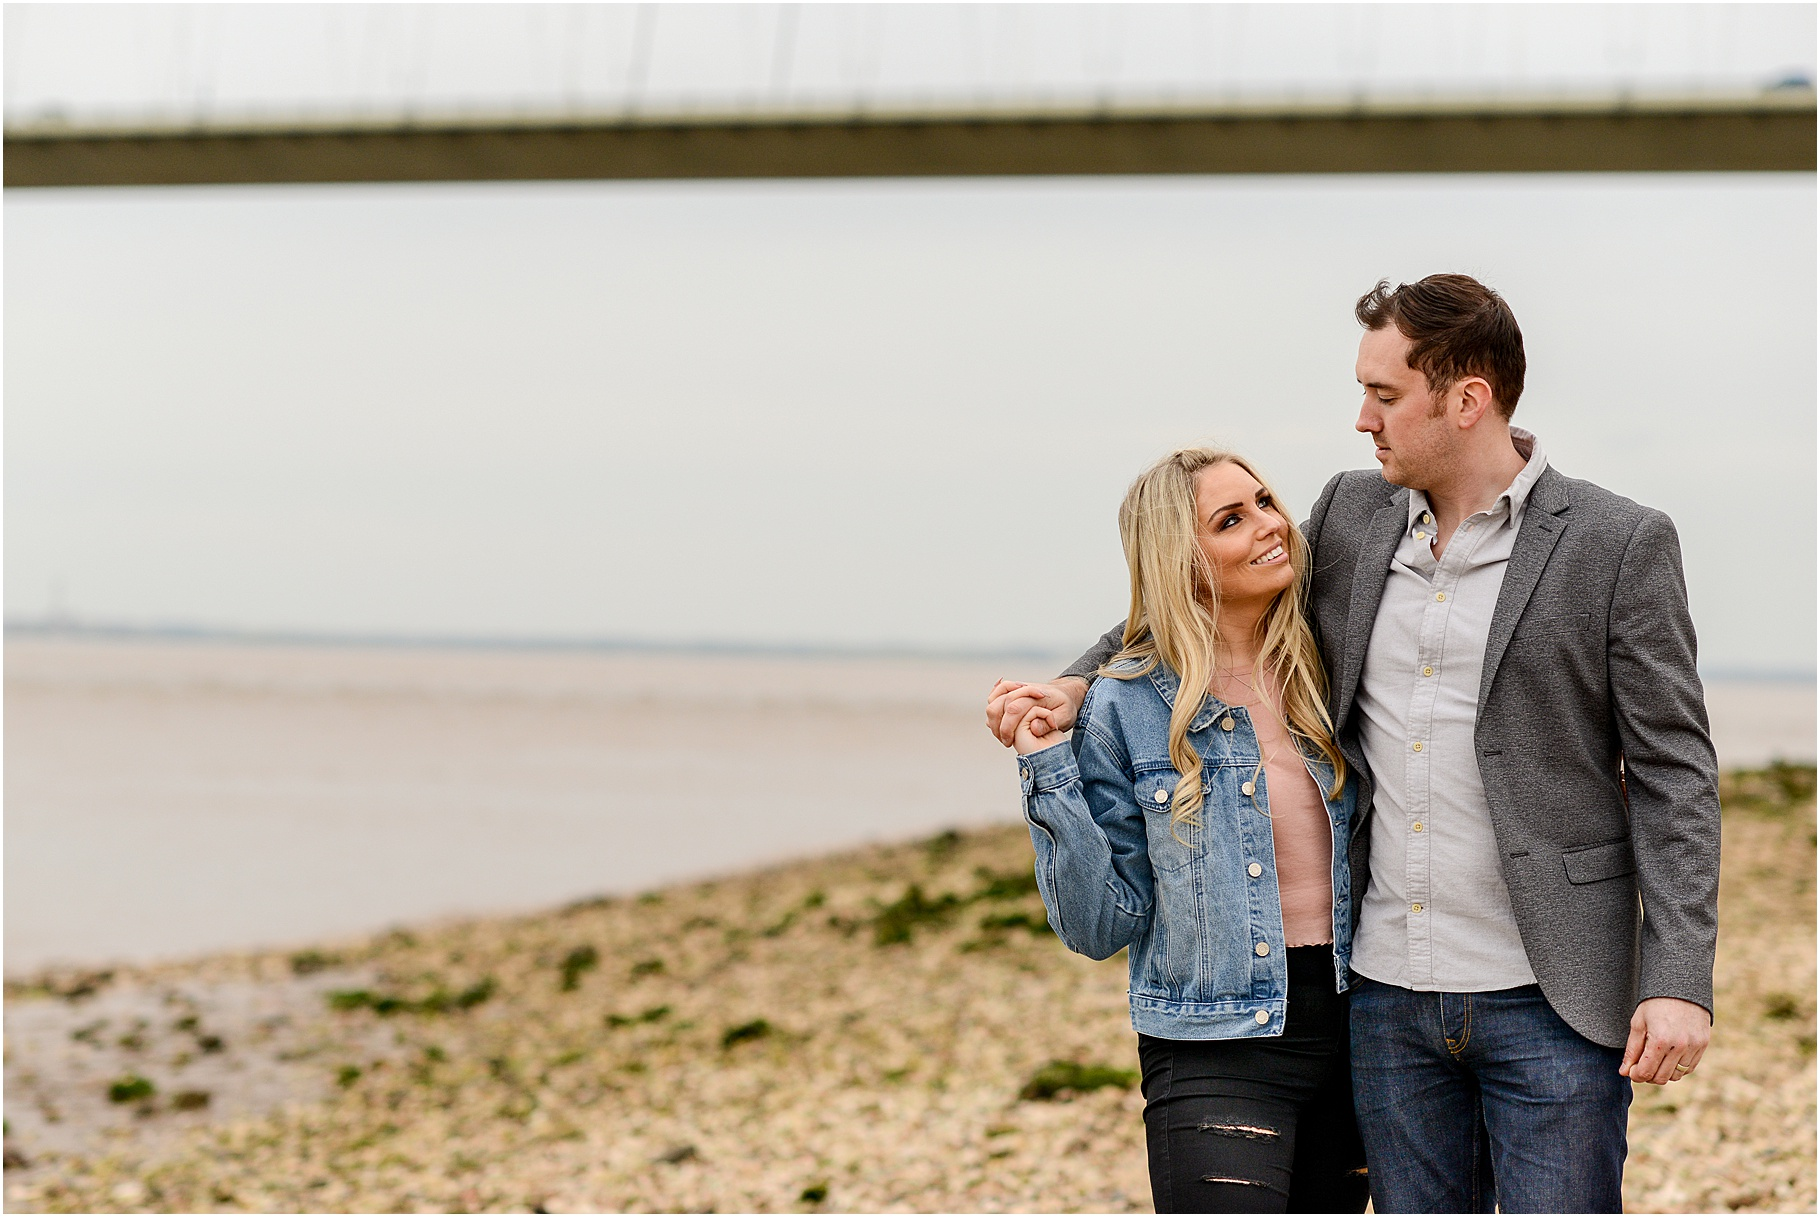 hull-portrait-shoot-15.jpg